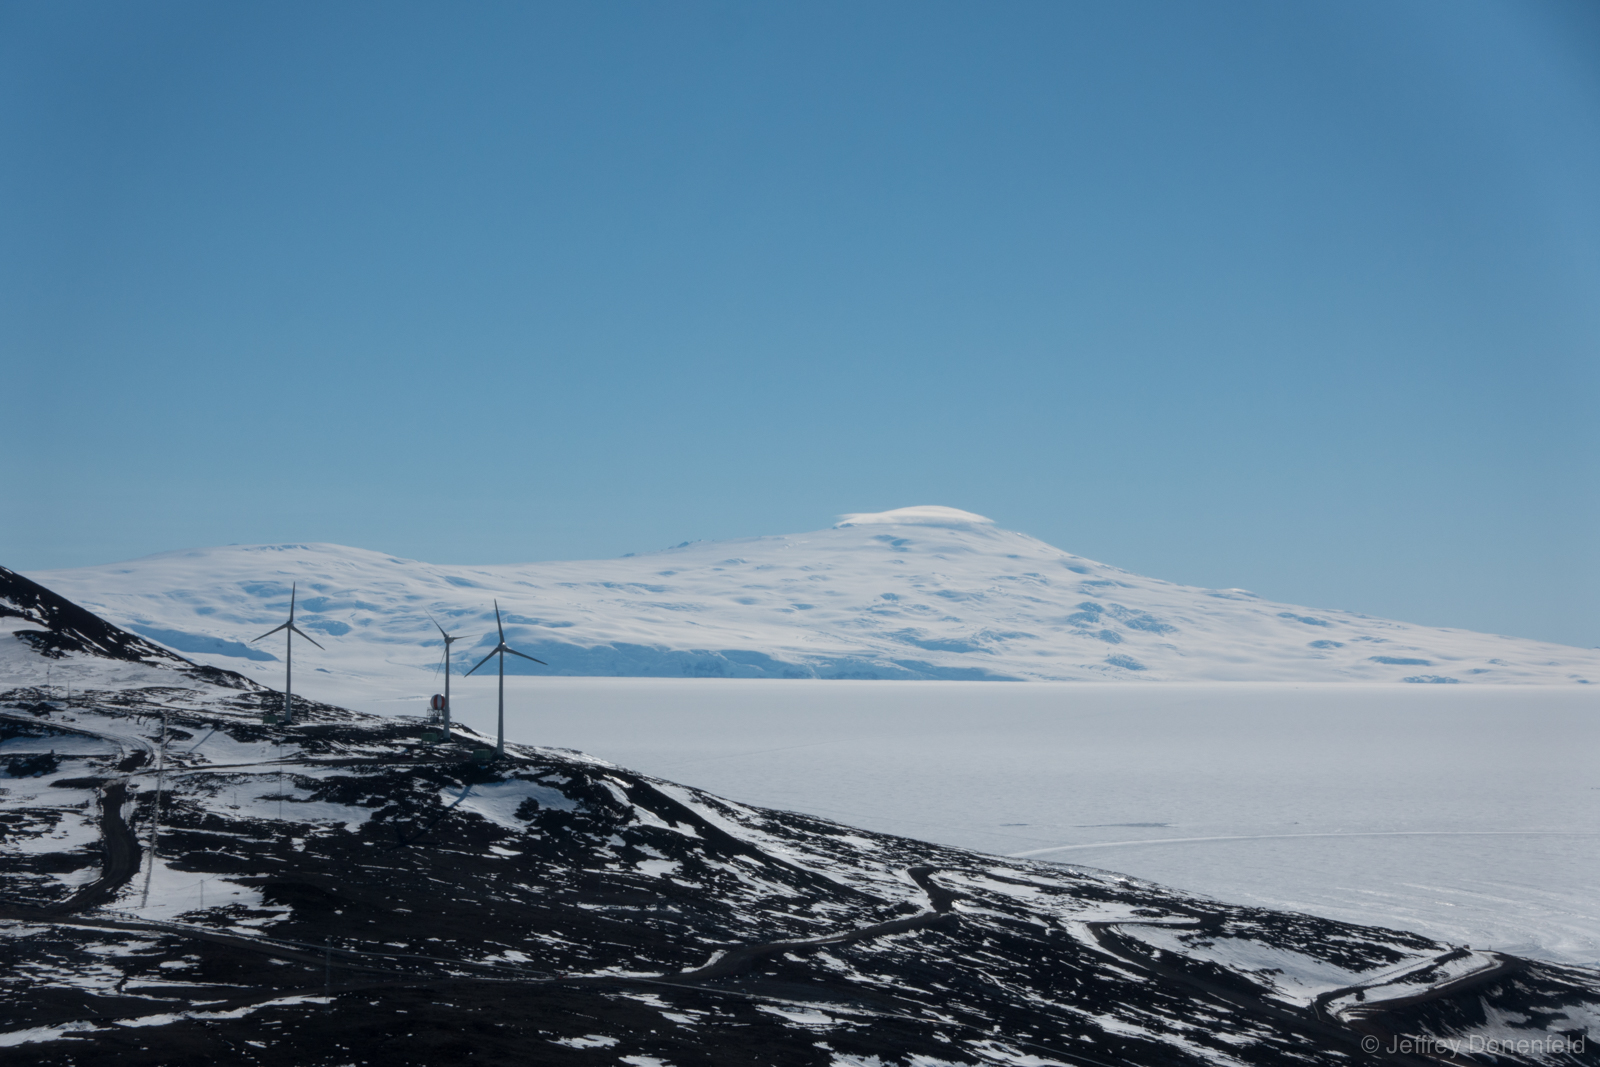 Looking north from Observation Hill, wind turbines are visible, as well as Mt. Terra Nova on the left and Mt. Terror on the right capped by a lenticular cloud.